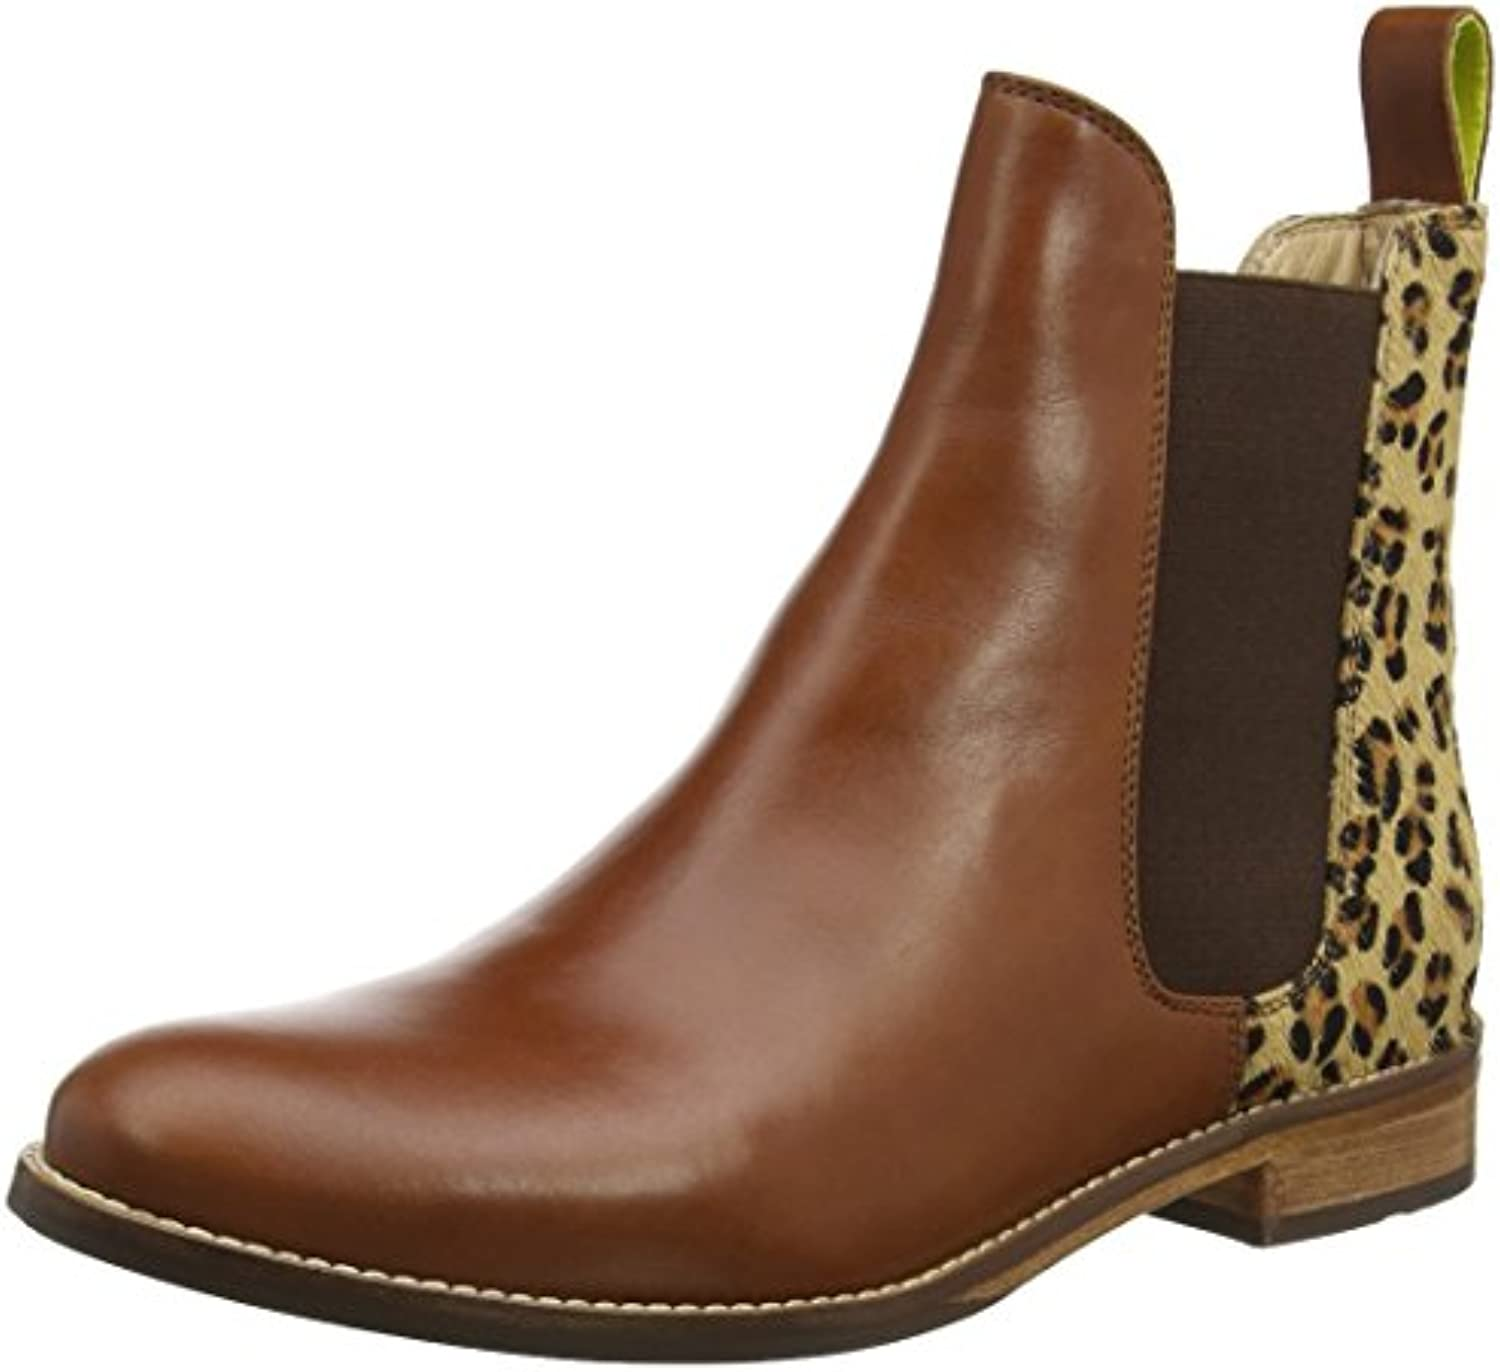 7513bba2f Joules Women s Westbourne Westbourne Westbourne Chelsea Boots B071Z8NM56  Parent 7d4af7